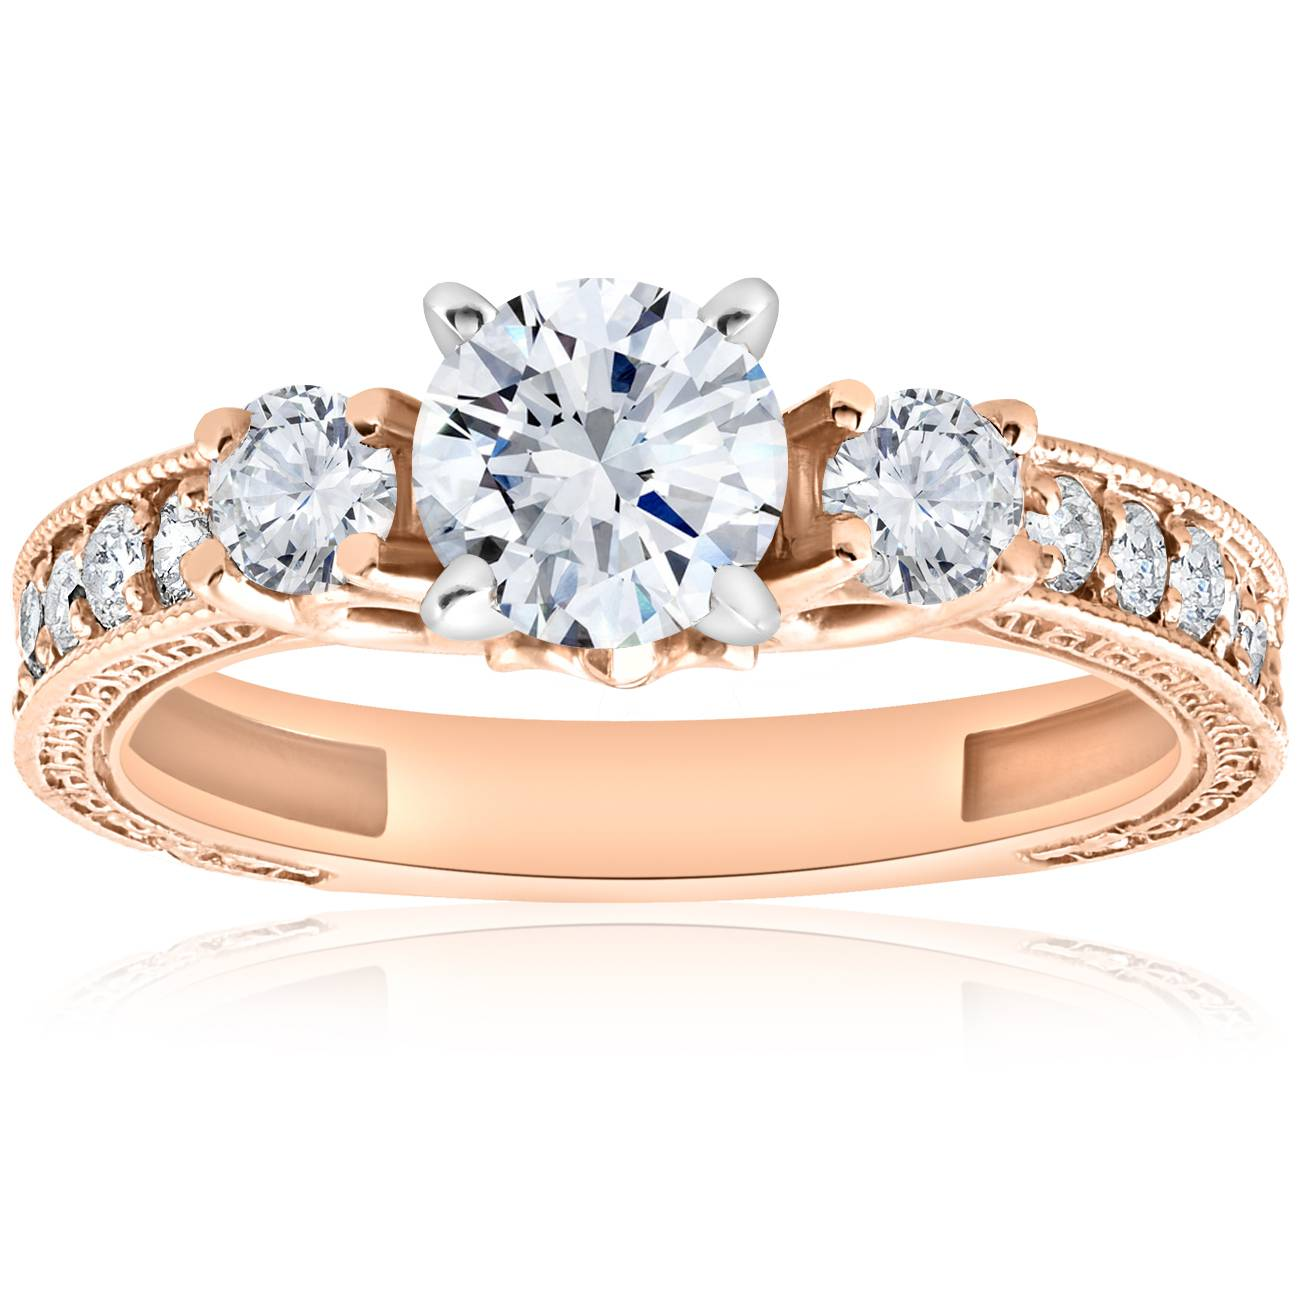 1 ct Vintage Real Diamond 3 Stone Engagement Ring 14K Rose Gold Antique Round Cut by Pompeii3